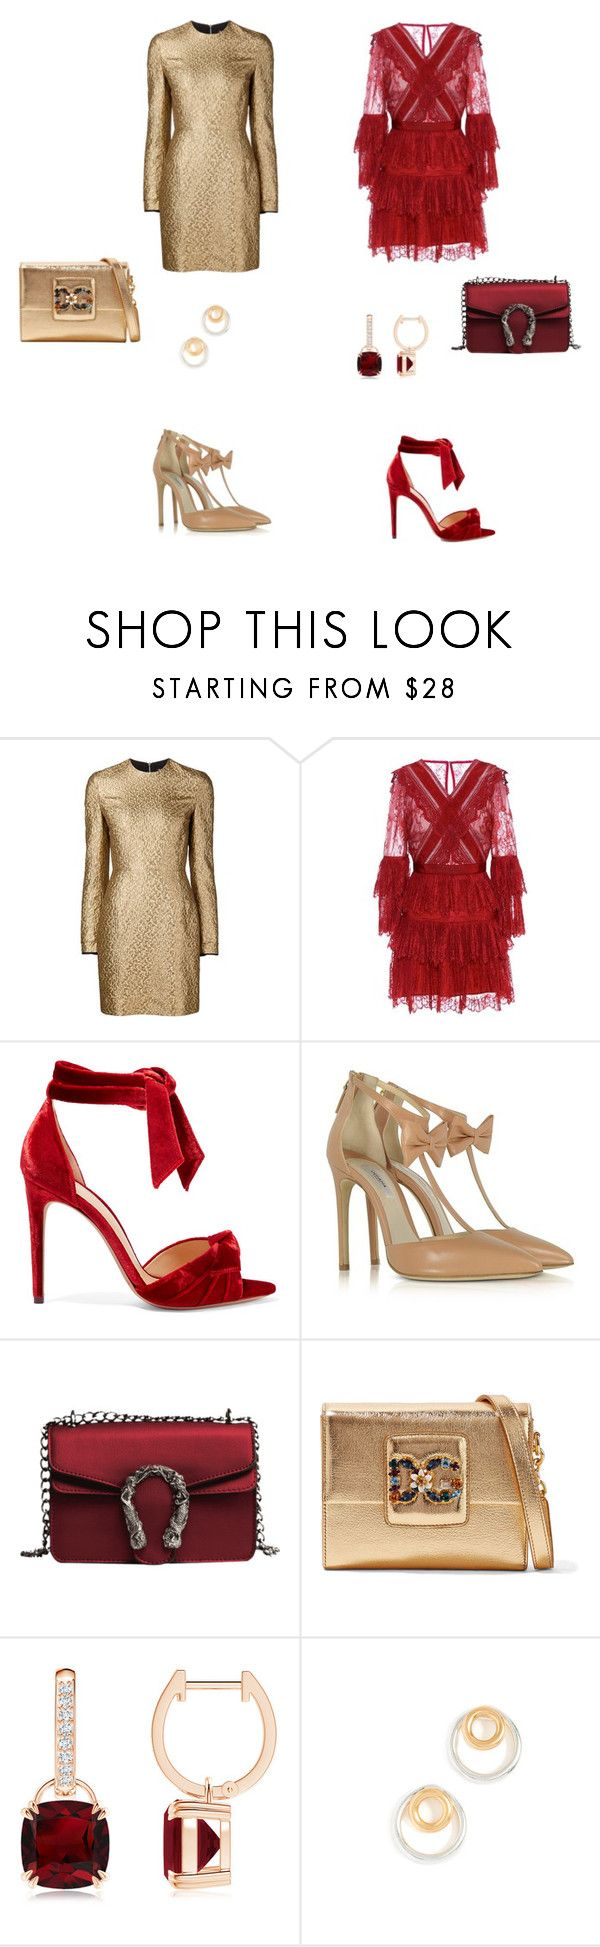 Untitled #84 by ru-mo on Polyvore featuring Creatures of the Wind, self-portrait, Olgana, Alexandre Birman, Dolce&Gabbana and Madewell